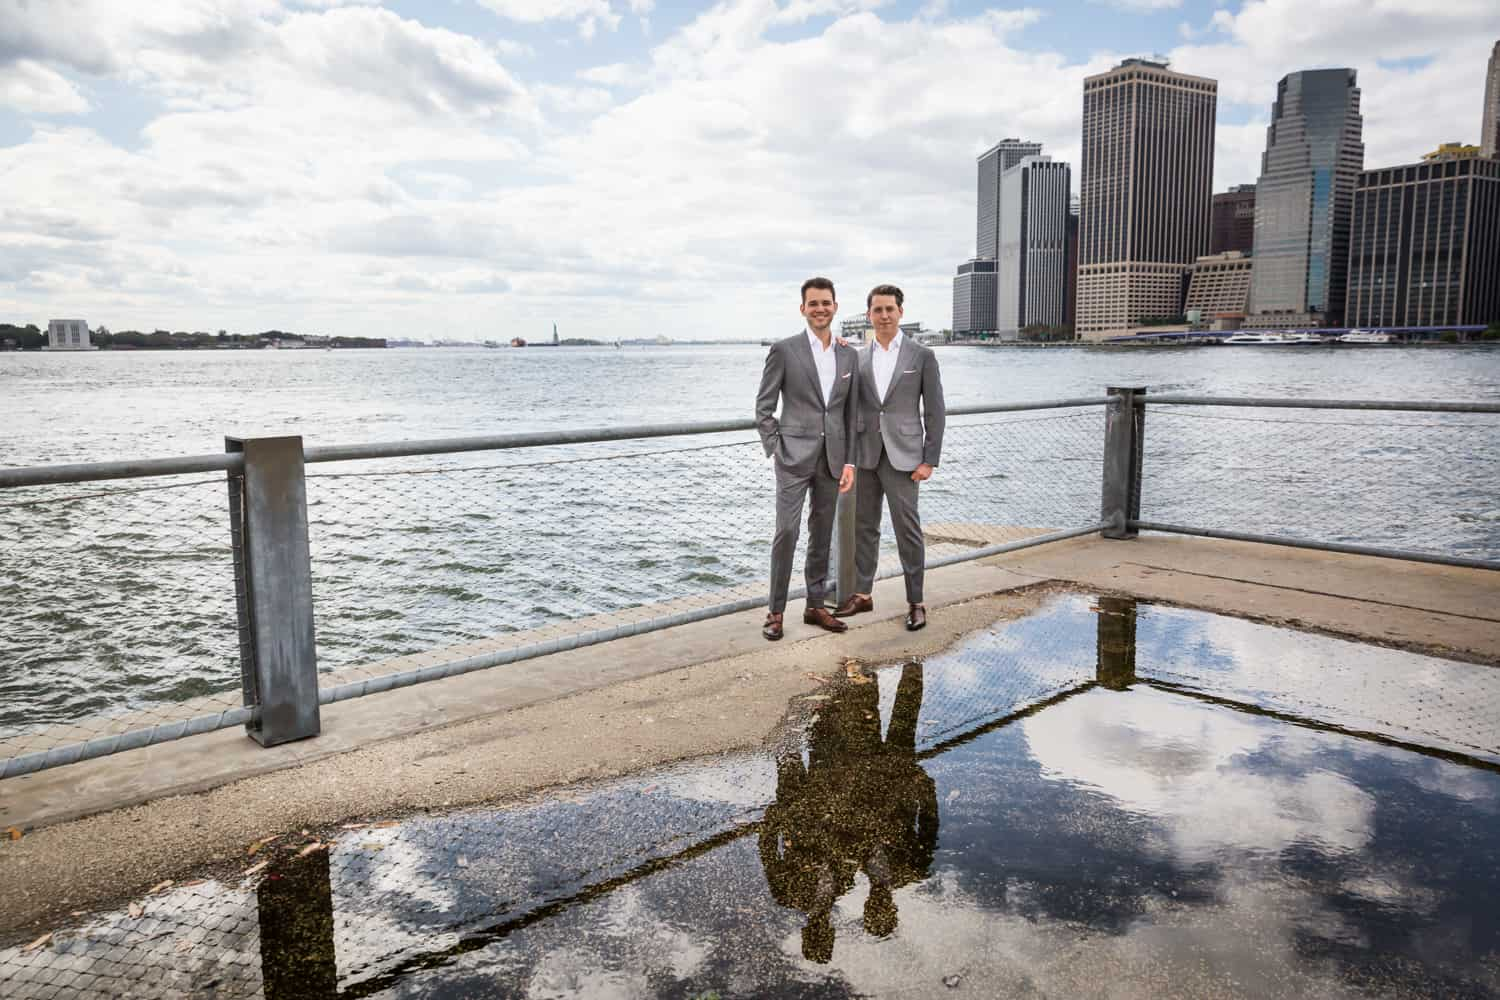 Greenpoint Loft wedding photos of two grooms at Brooklyn Bridge Park reflected in water puddle